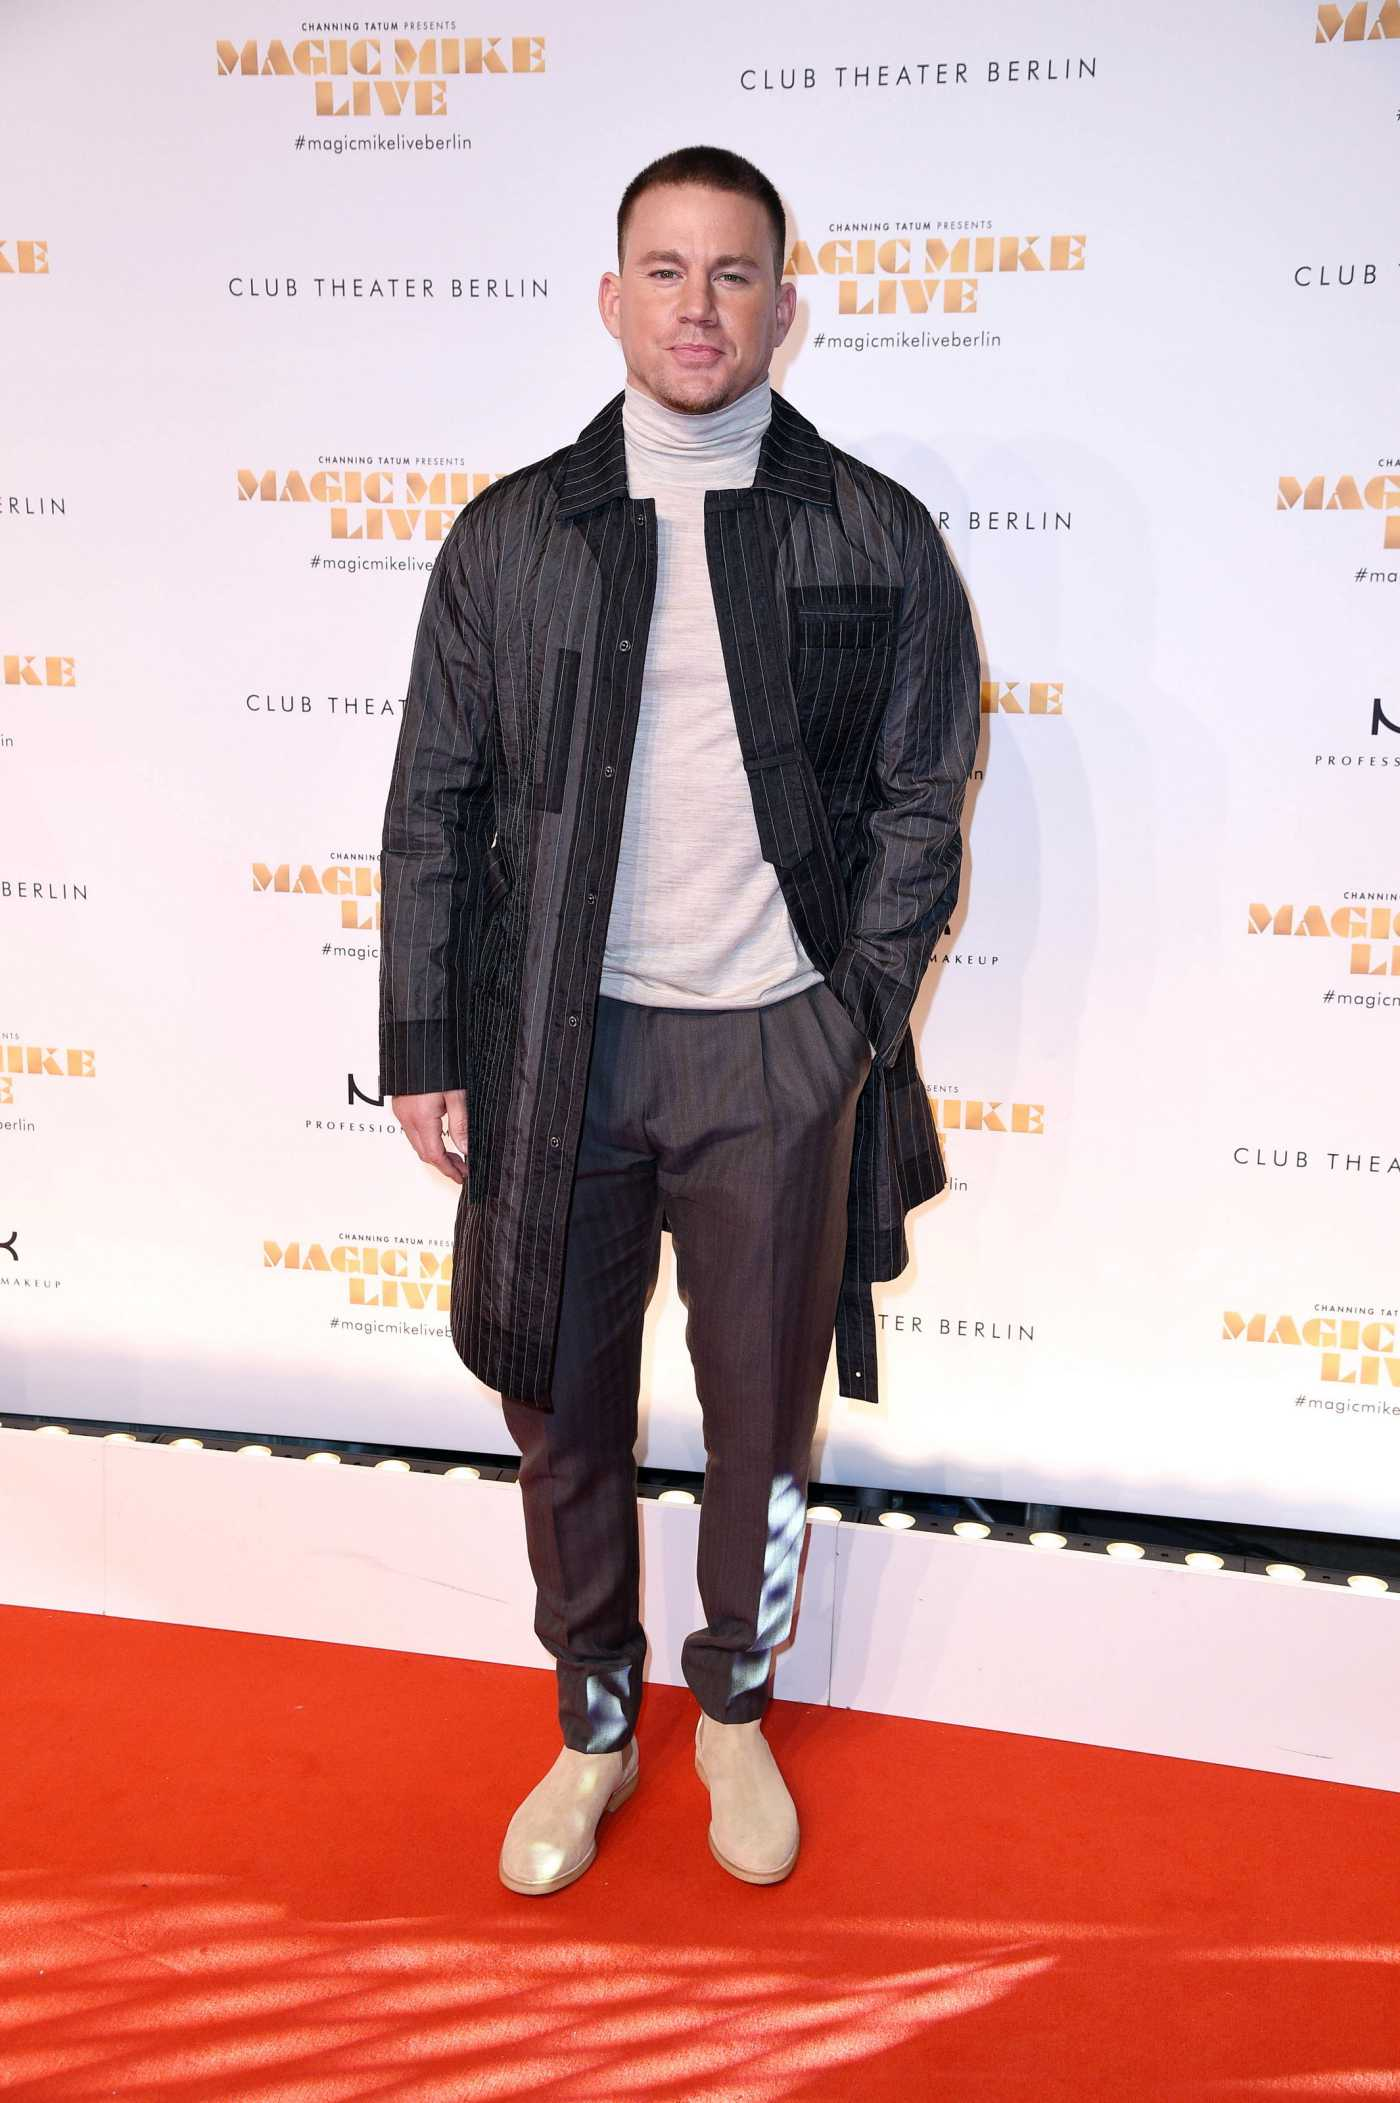 Channing Tatum Attends the Magic Mike Live Premiere in Berlin 01/16/2020